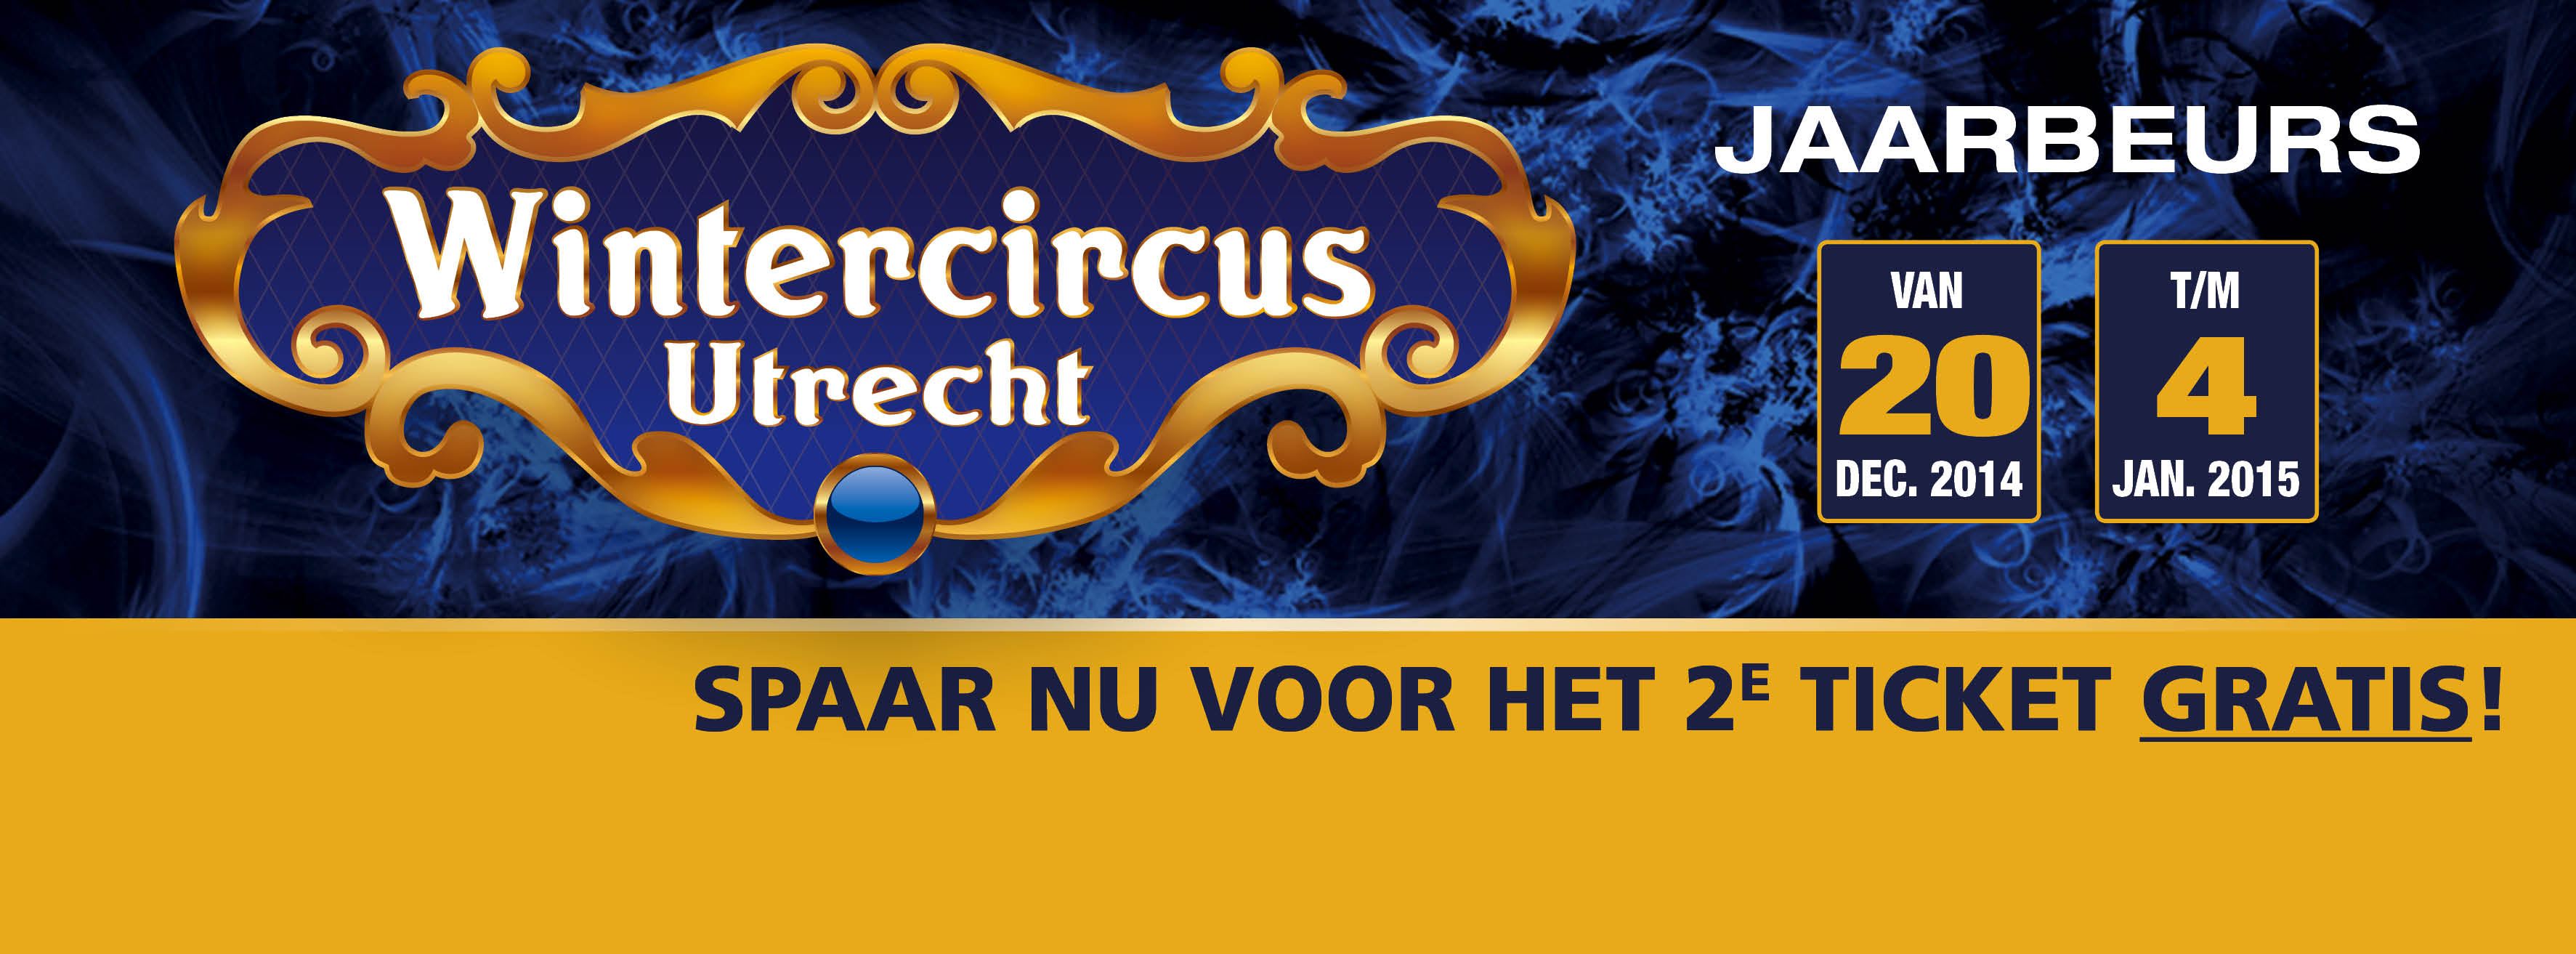 Wintercircus spaaractie met We Do Retail